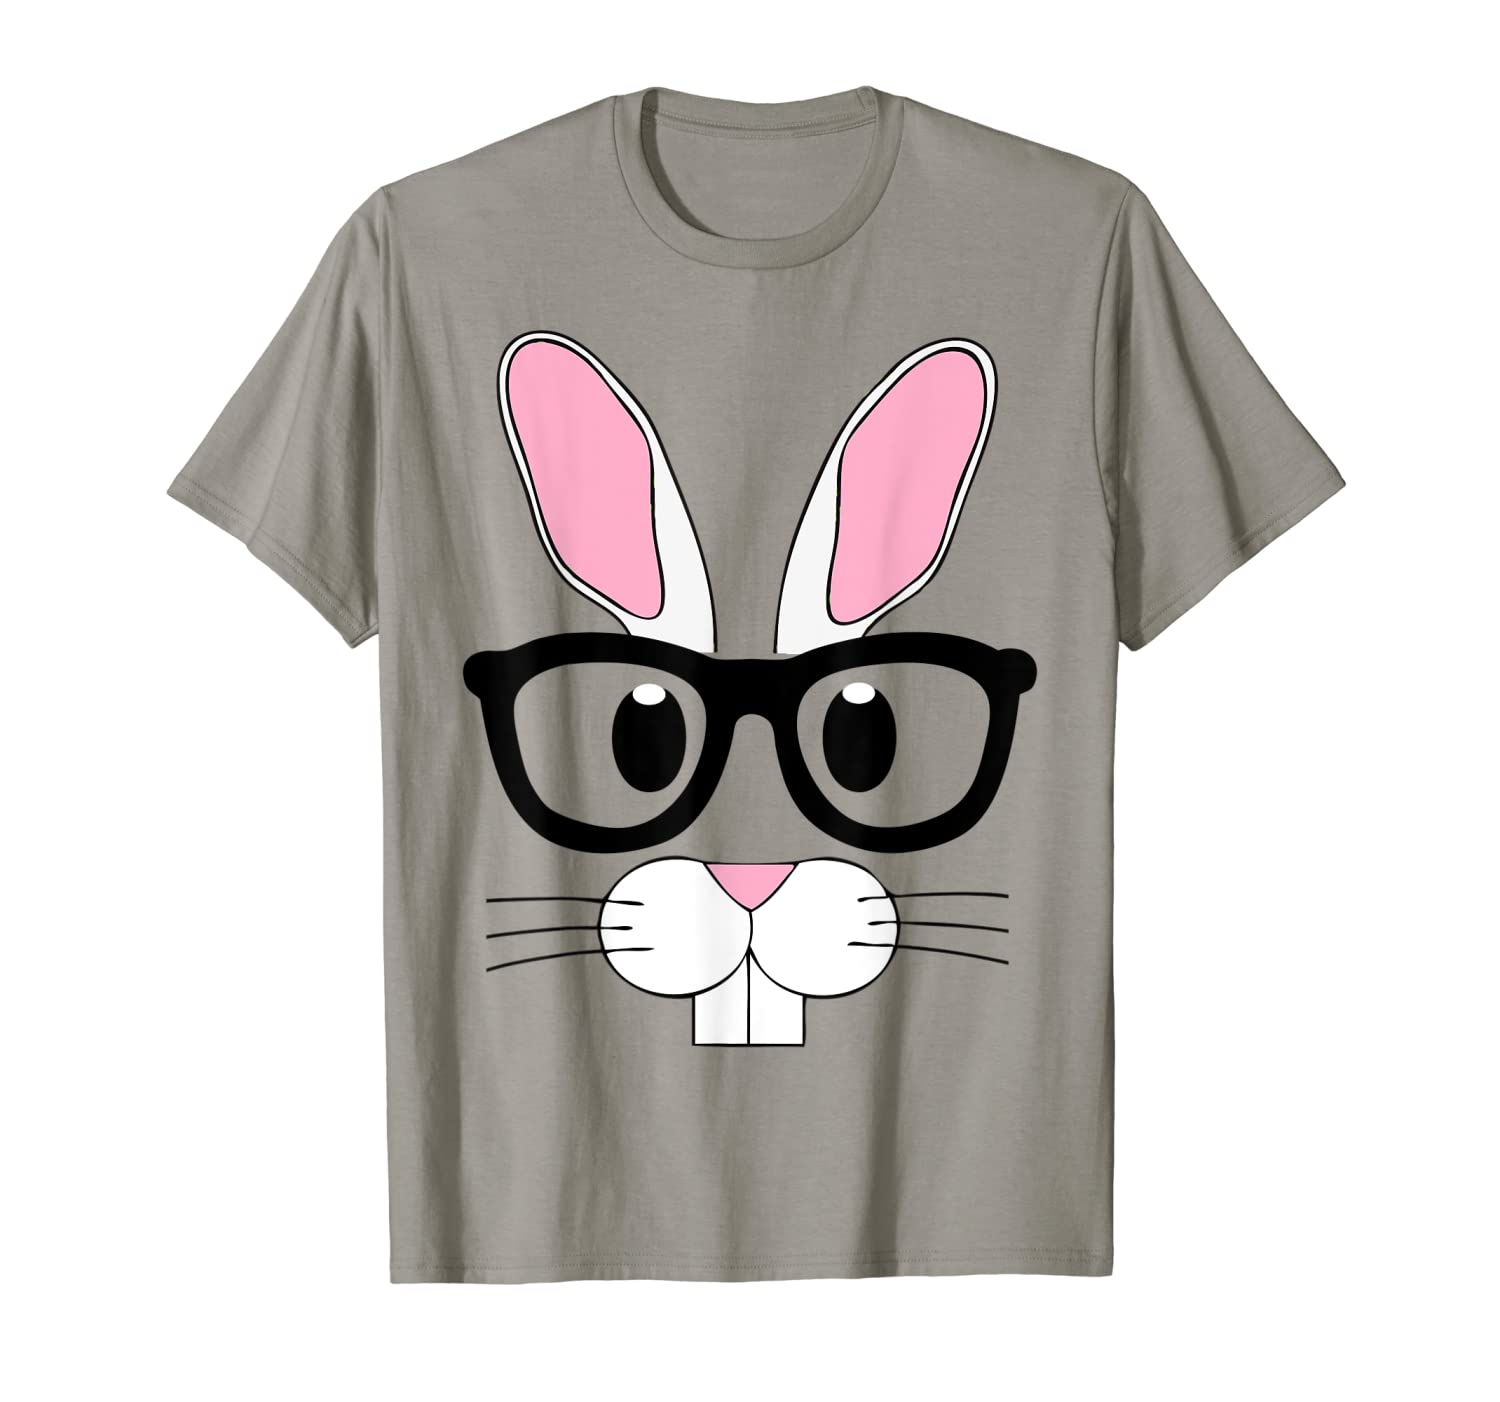 Nerd Emoji Bunny Easter Shirt Outfit Boys Girls Toddlers